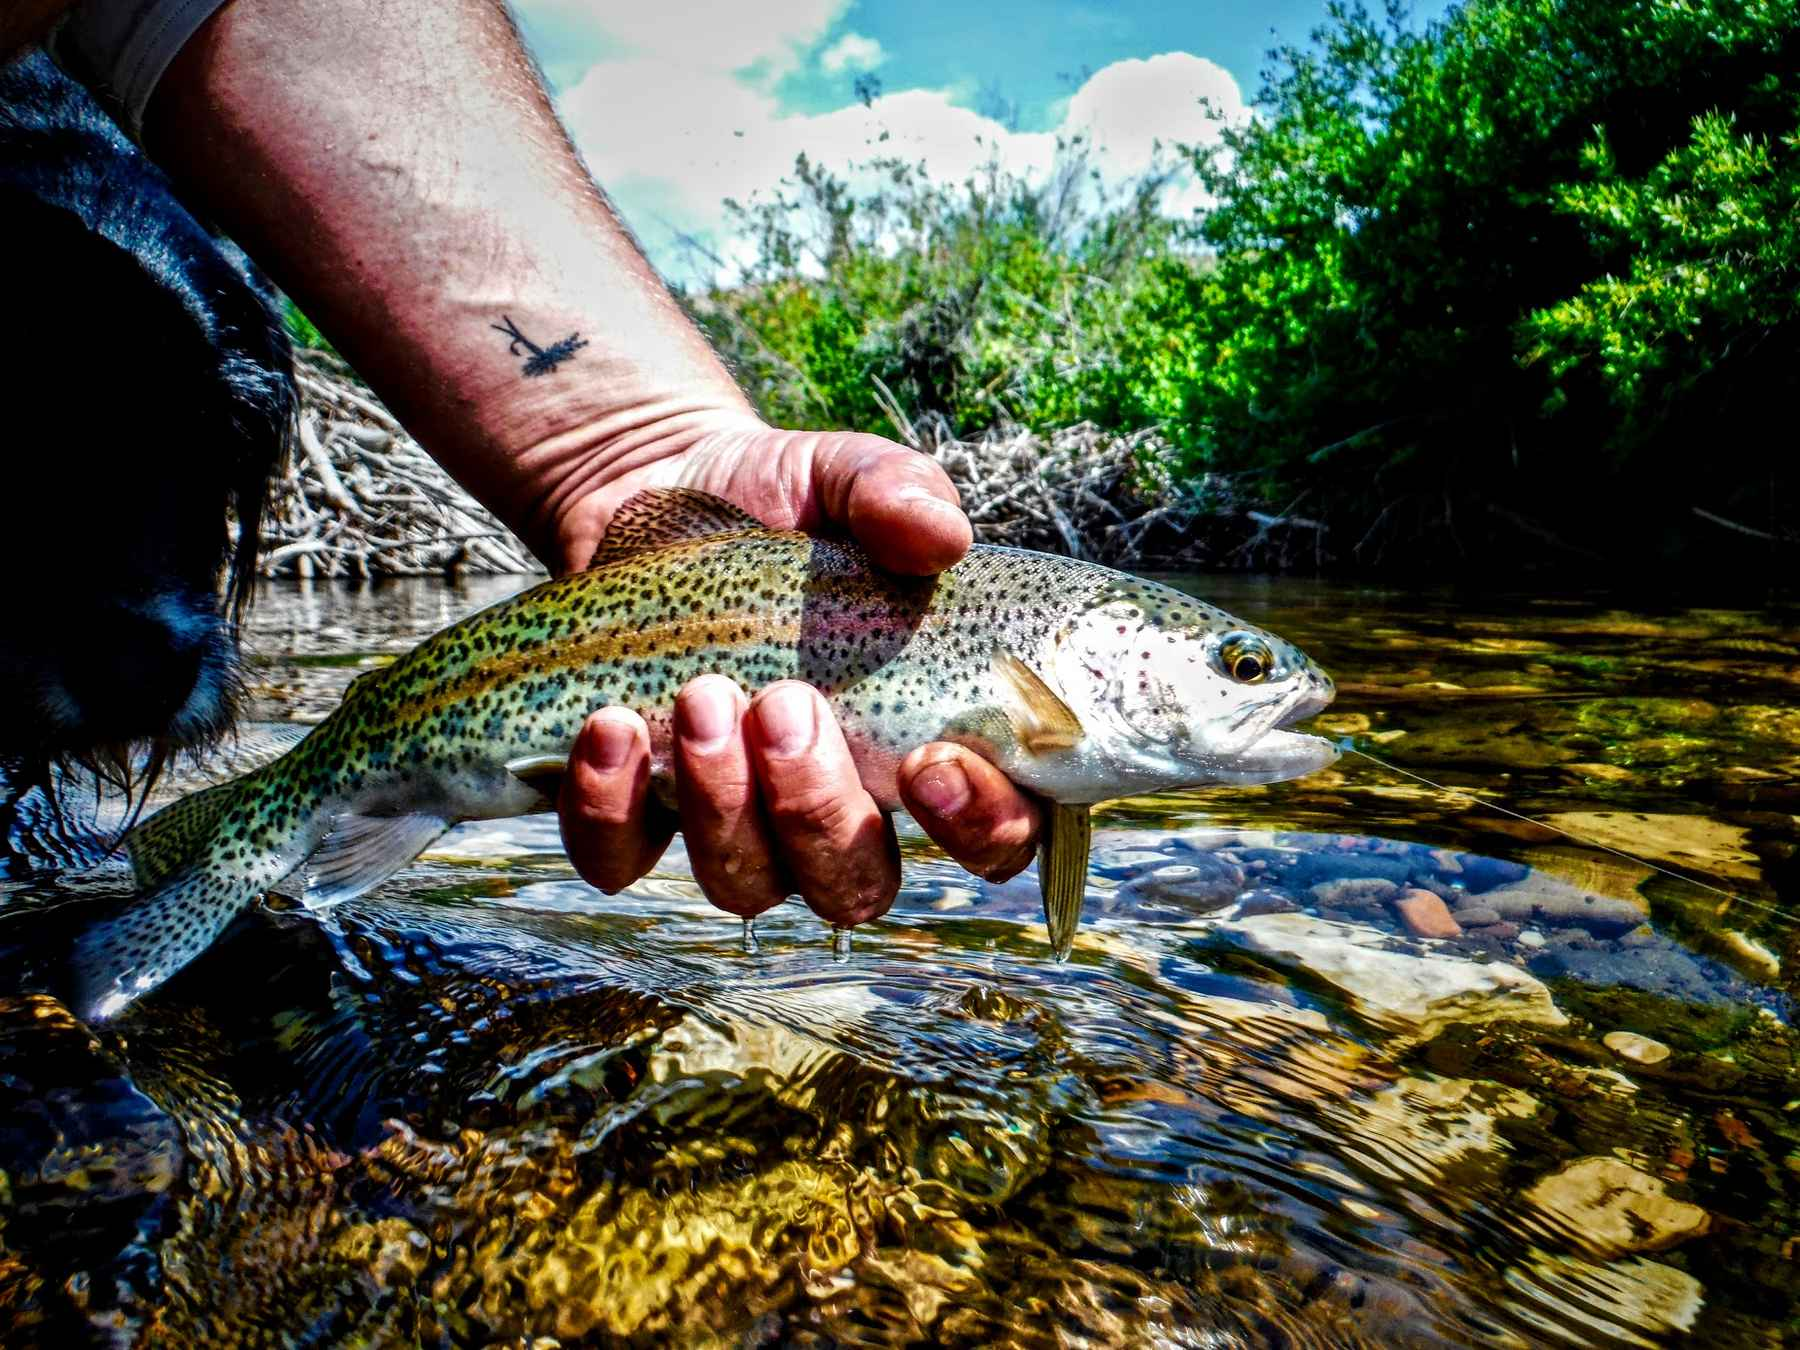 For dry-fly creek freaks, it's the best time of the year